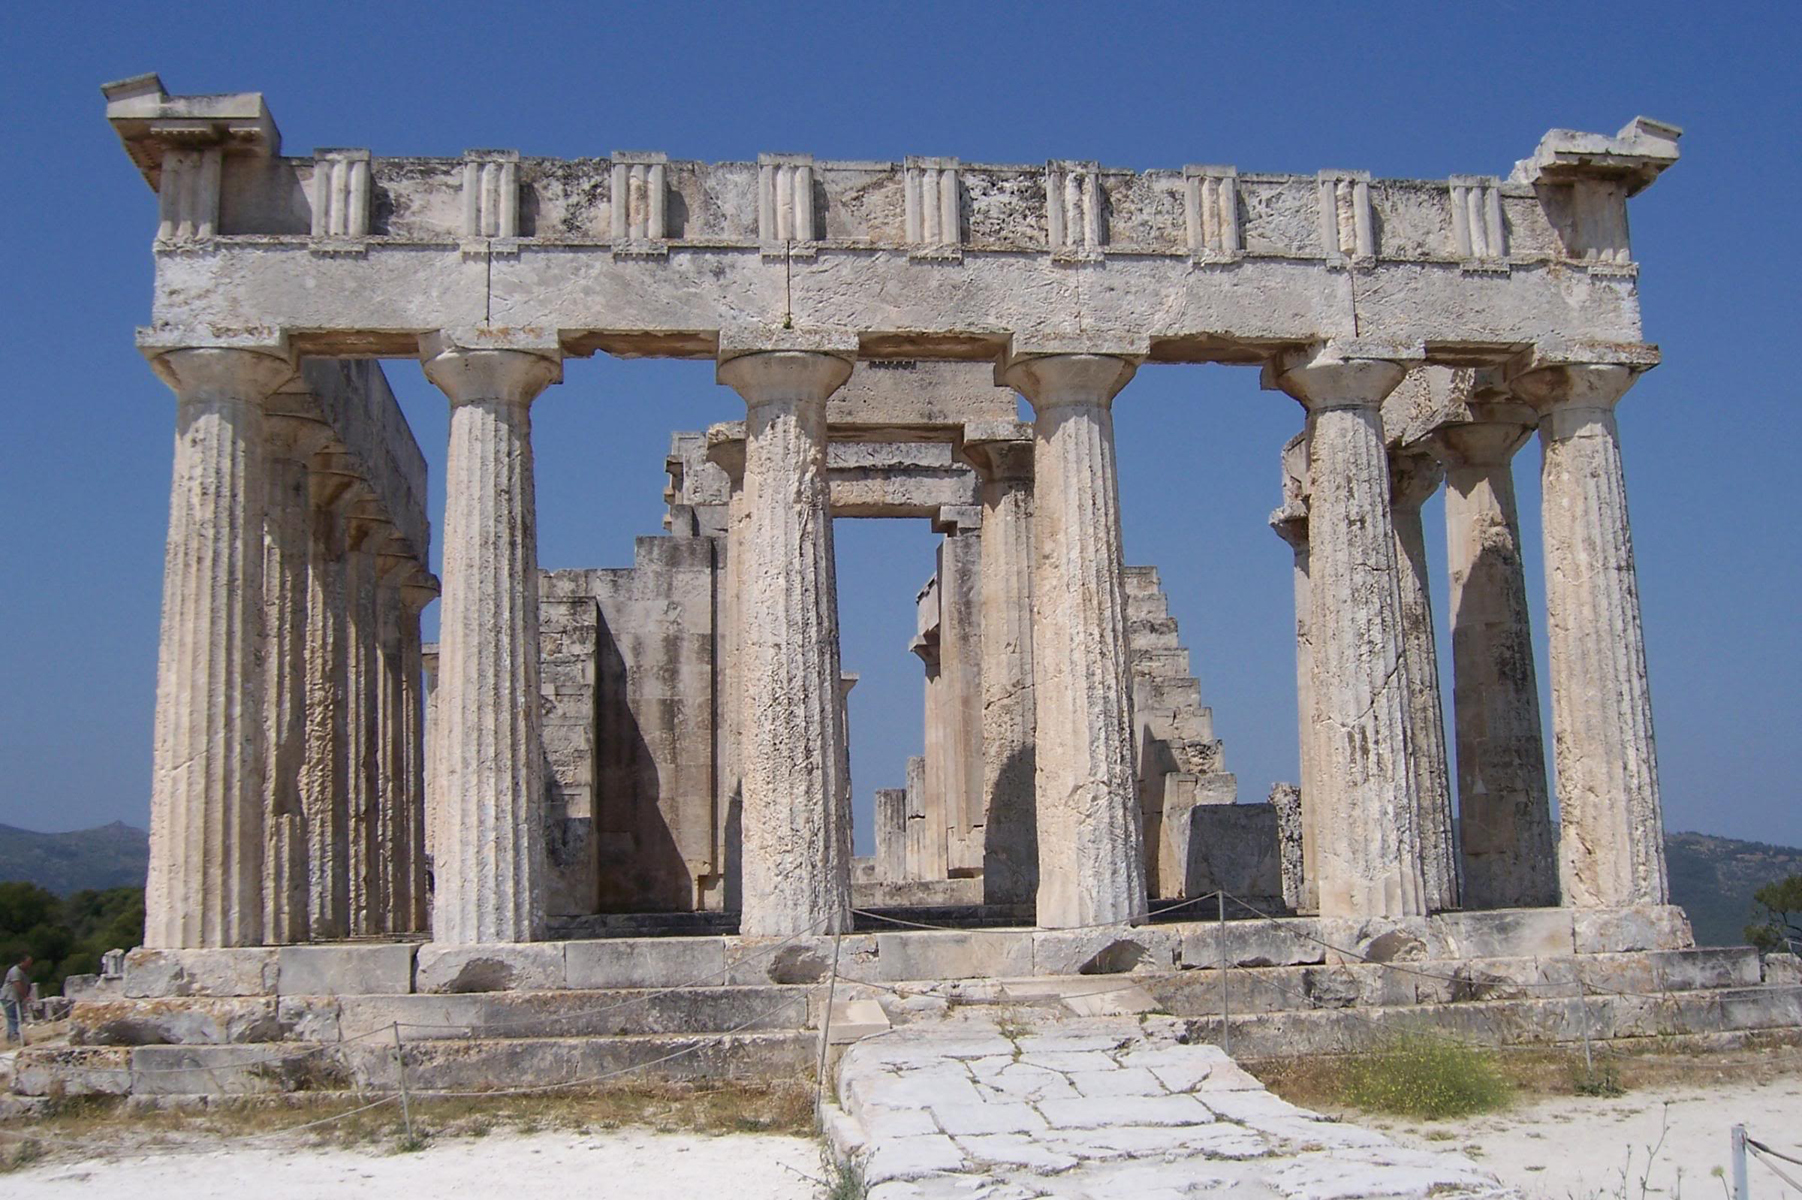 greek architecture temple ancient greece archaic temples structures greeks hera aegina aphaia early basilica solid roman classical architectural paestum arth